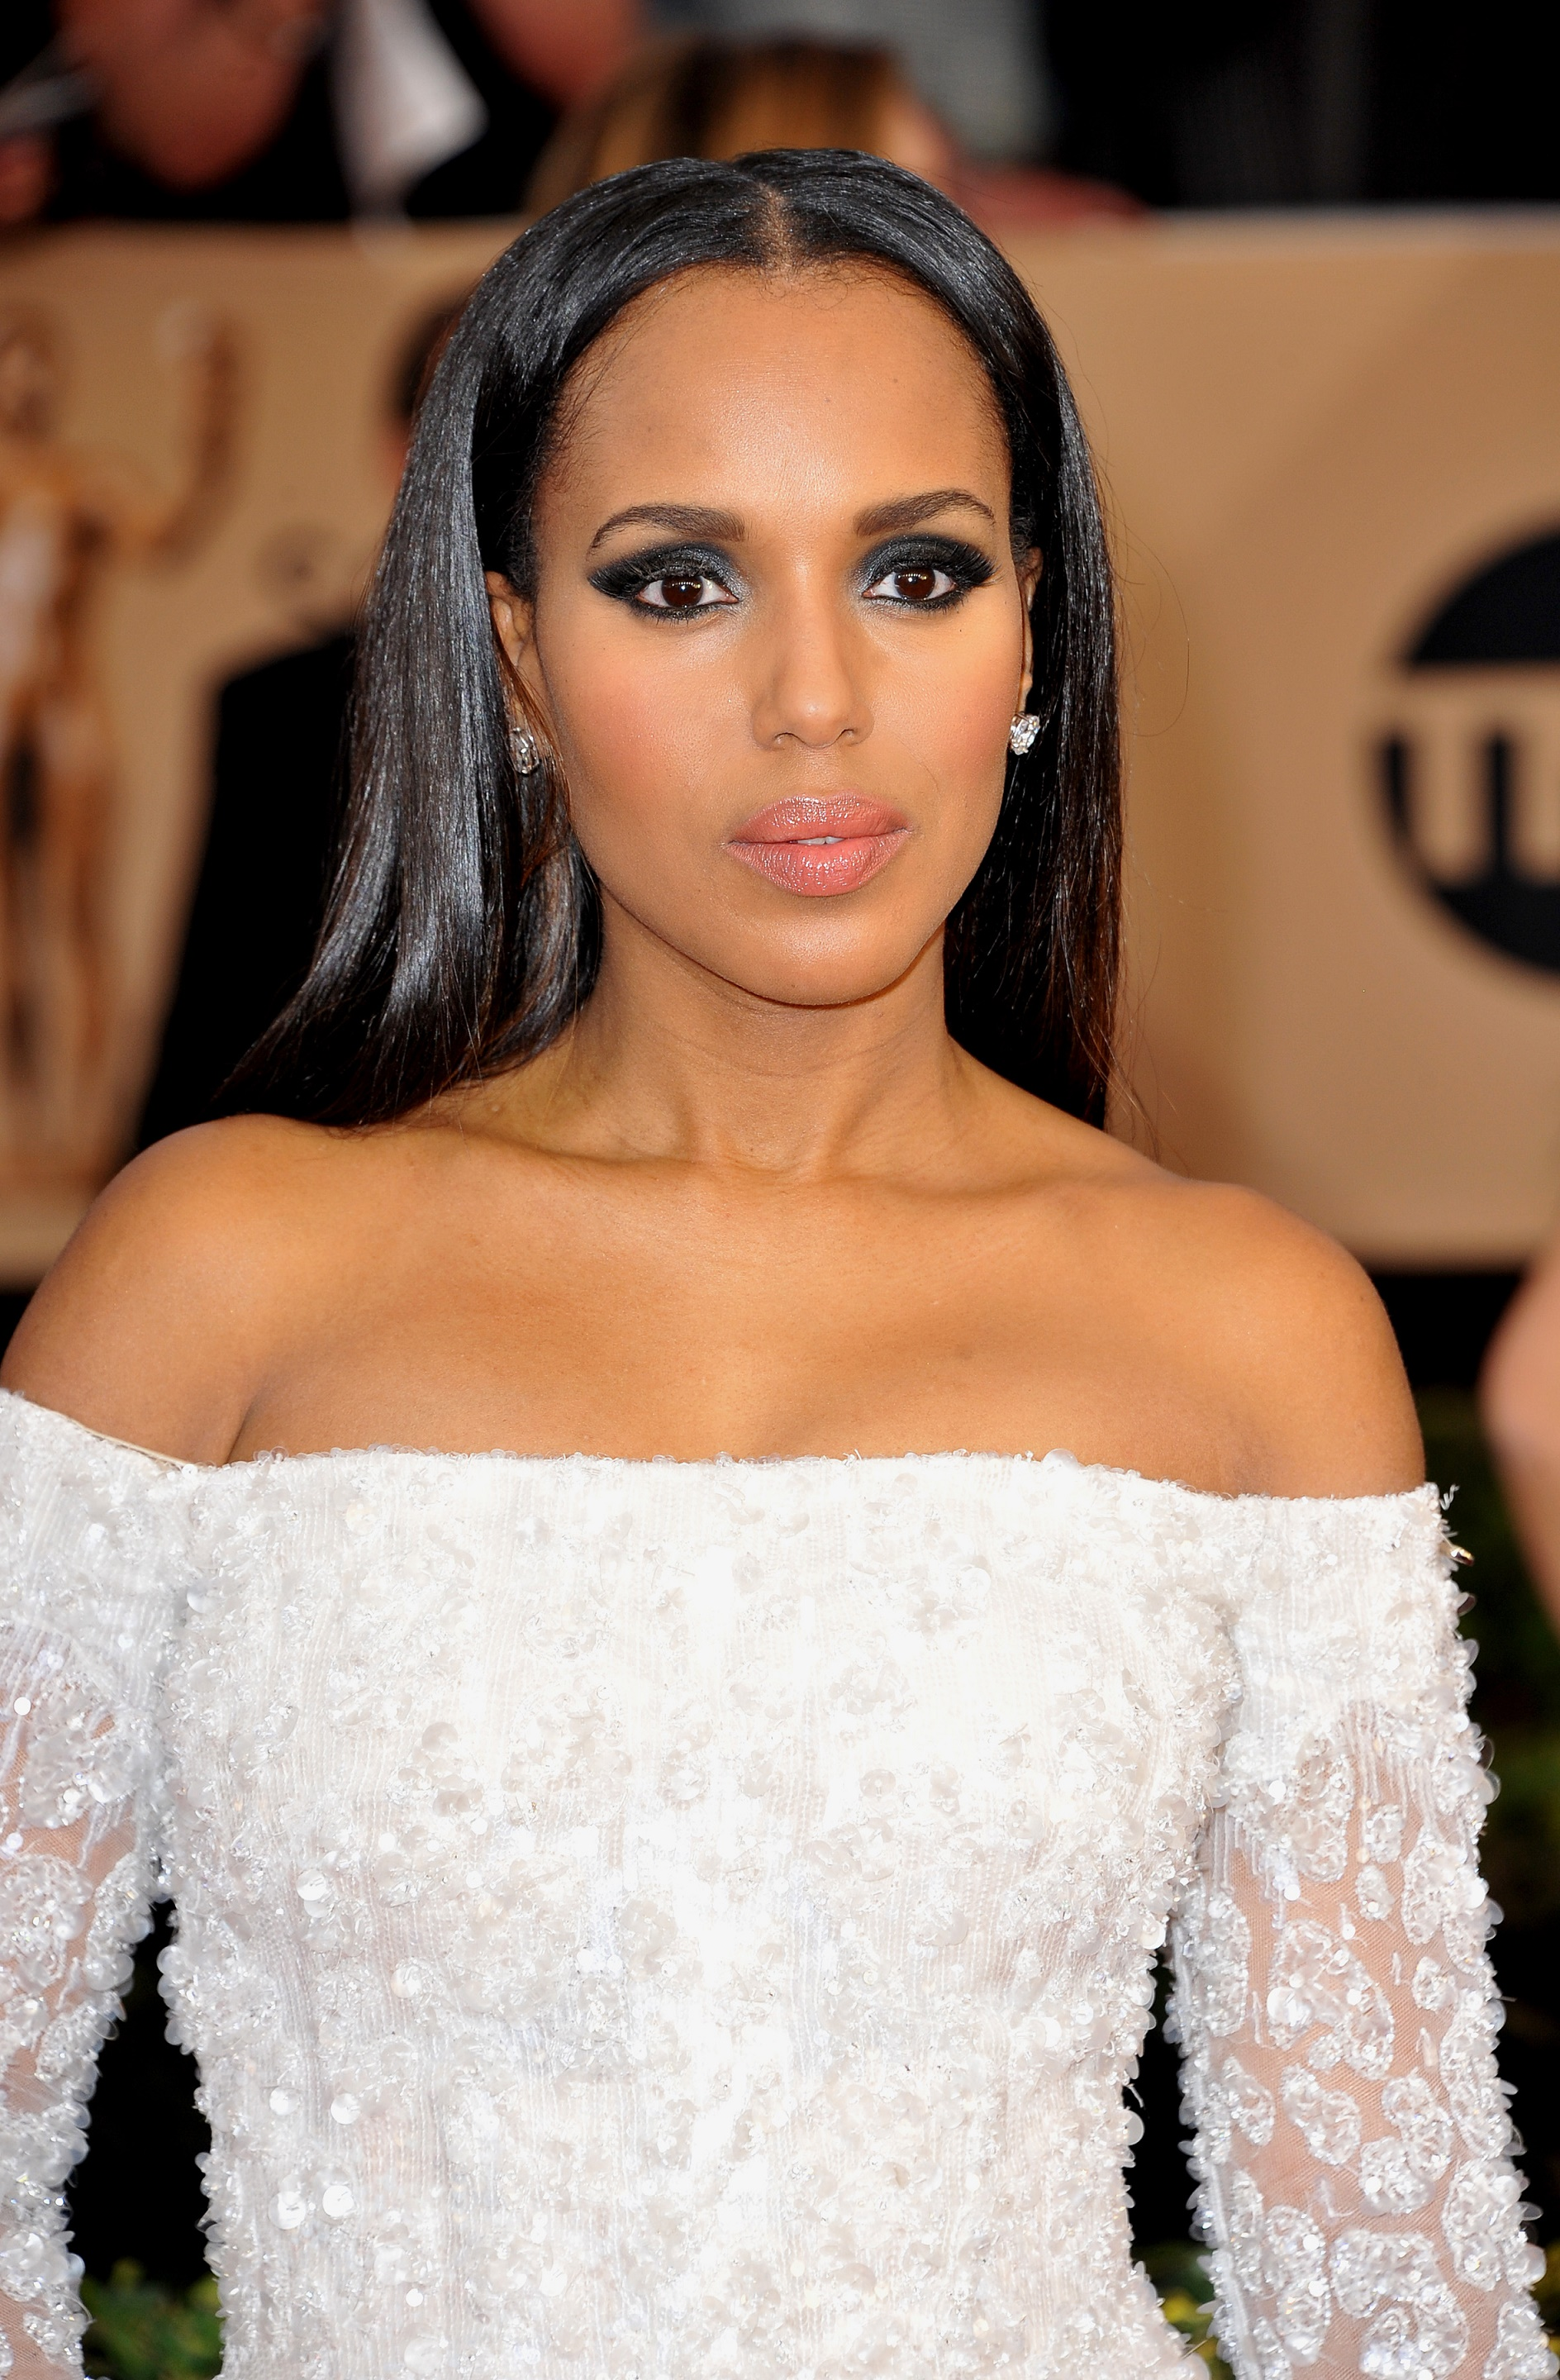 kerry washington hot pictures